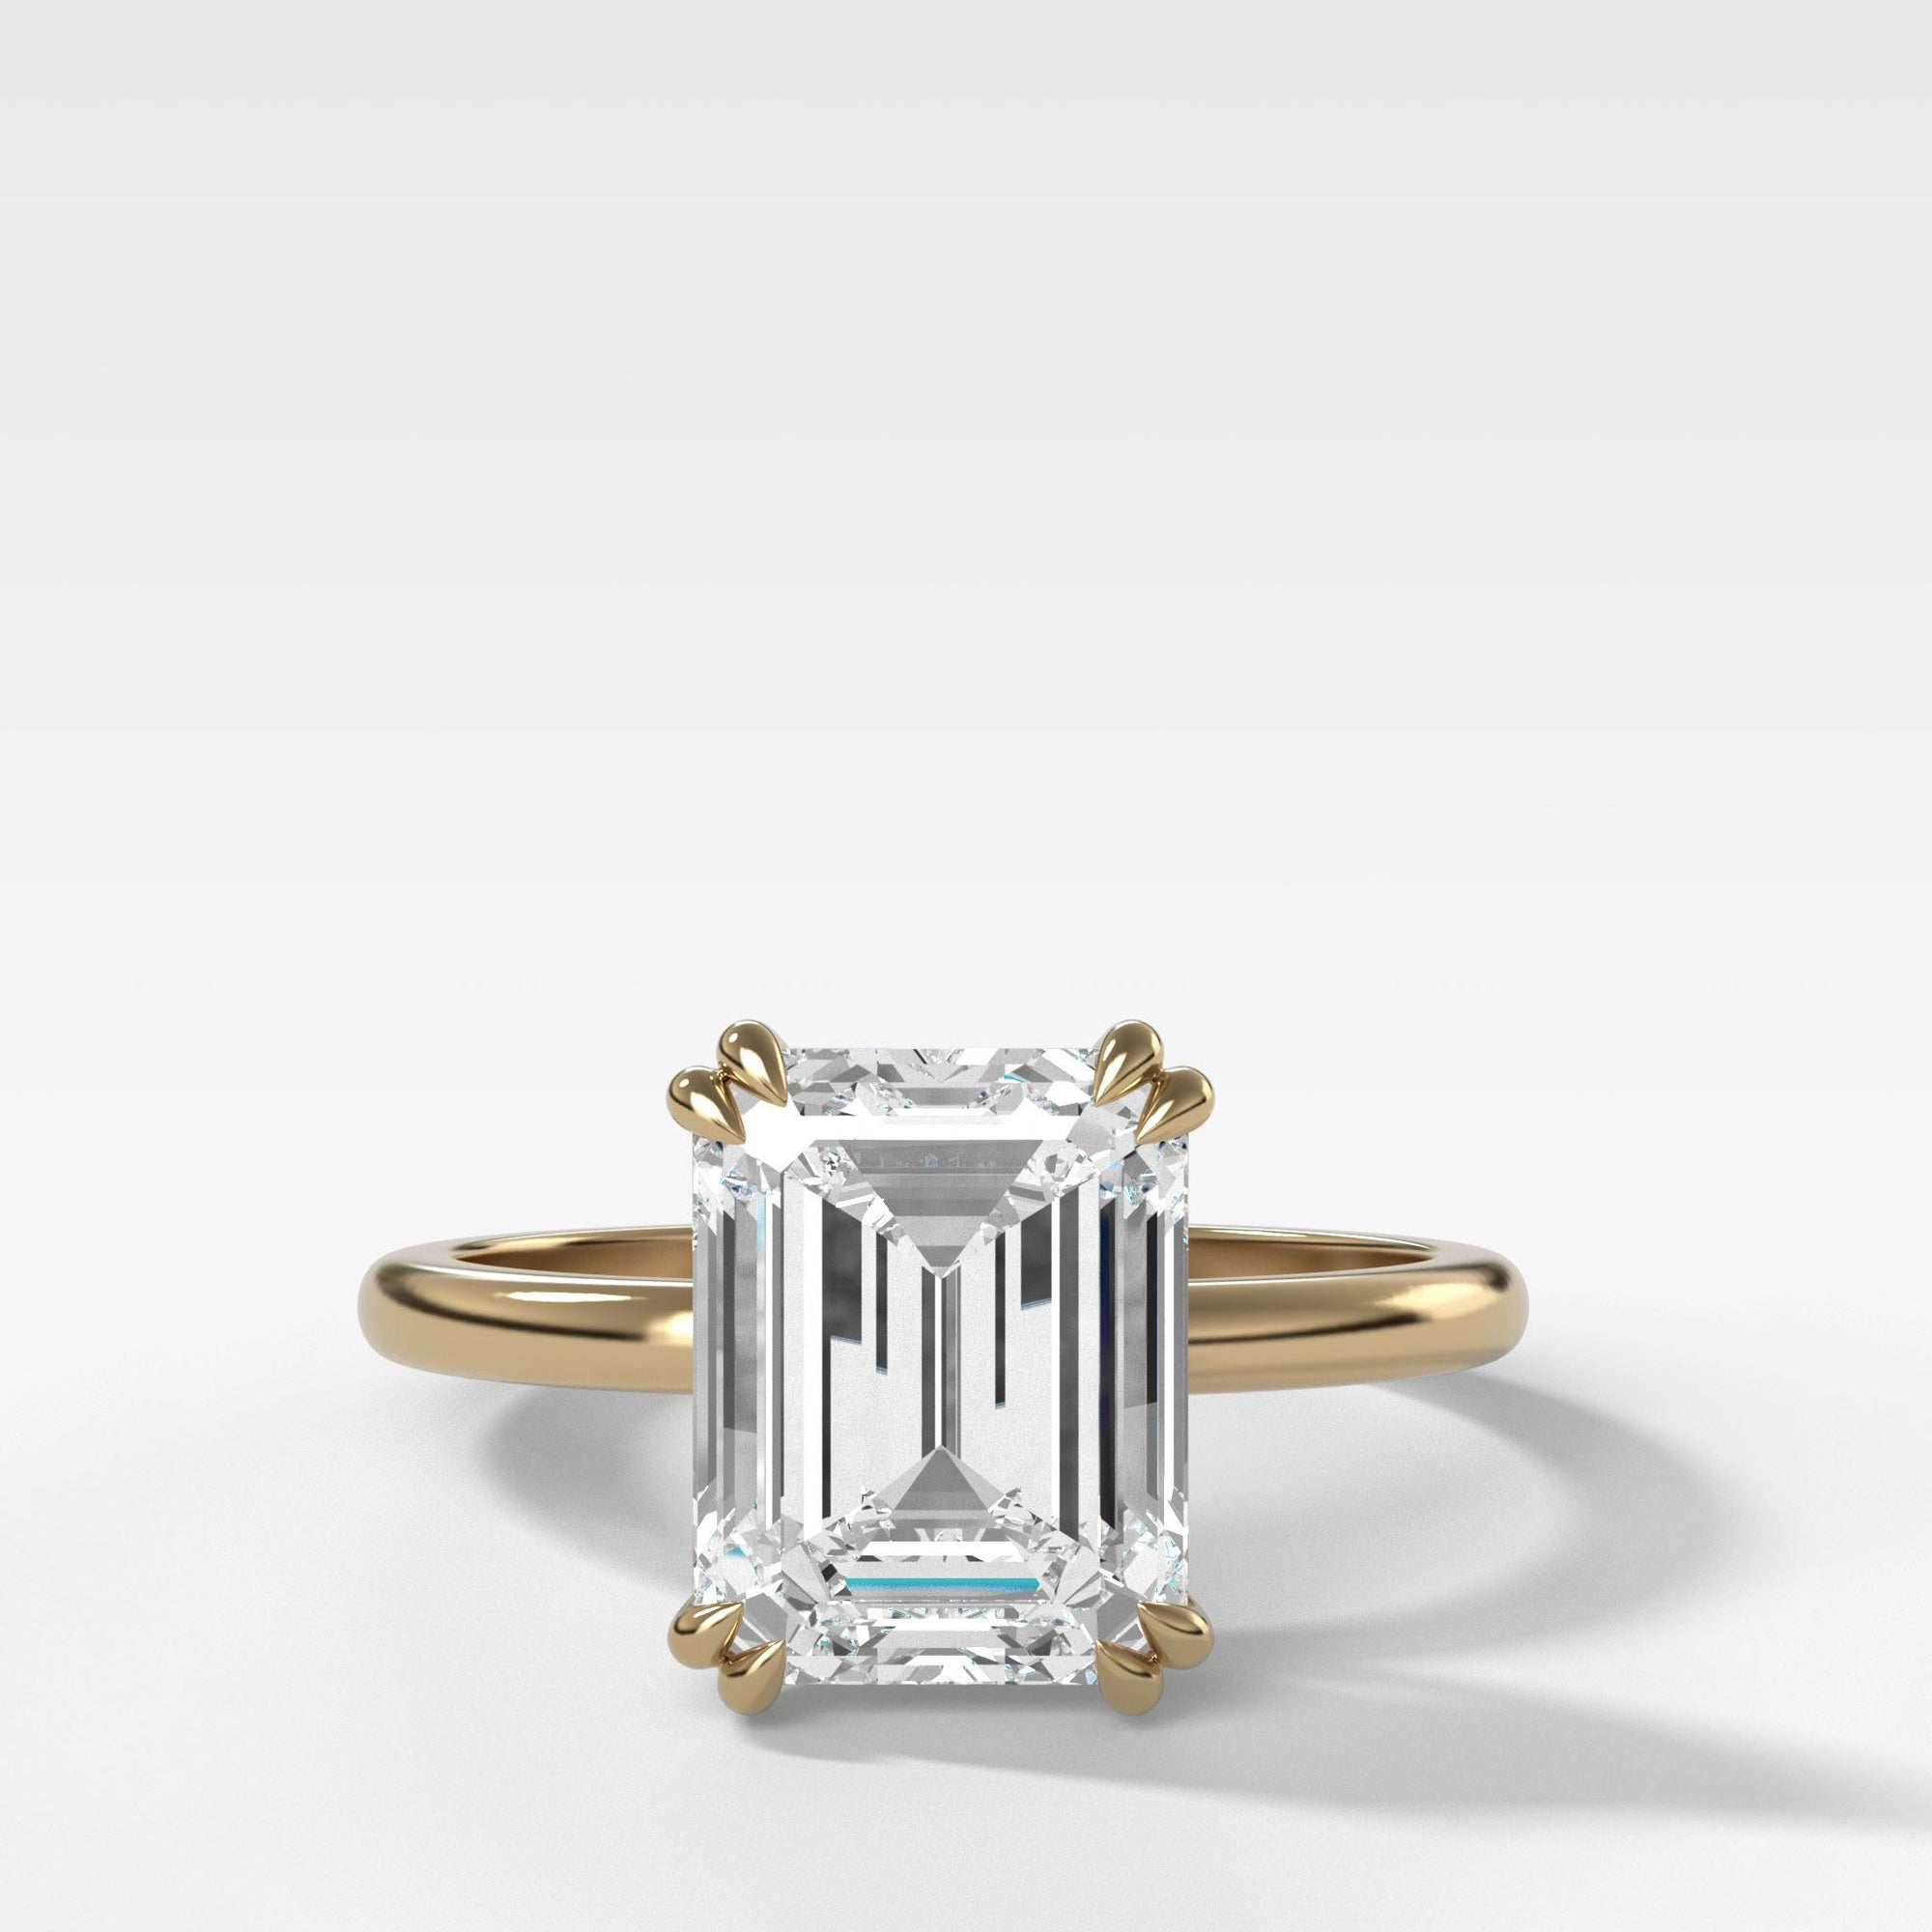 Signature Cathedral Solitaire With Emerald Cut (North South) in Yellow Gold by Good Stone